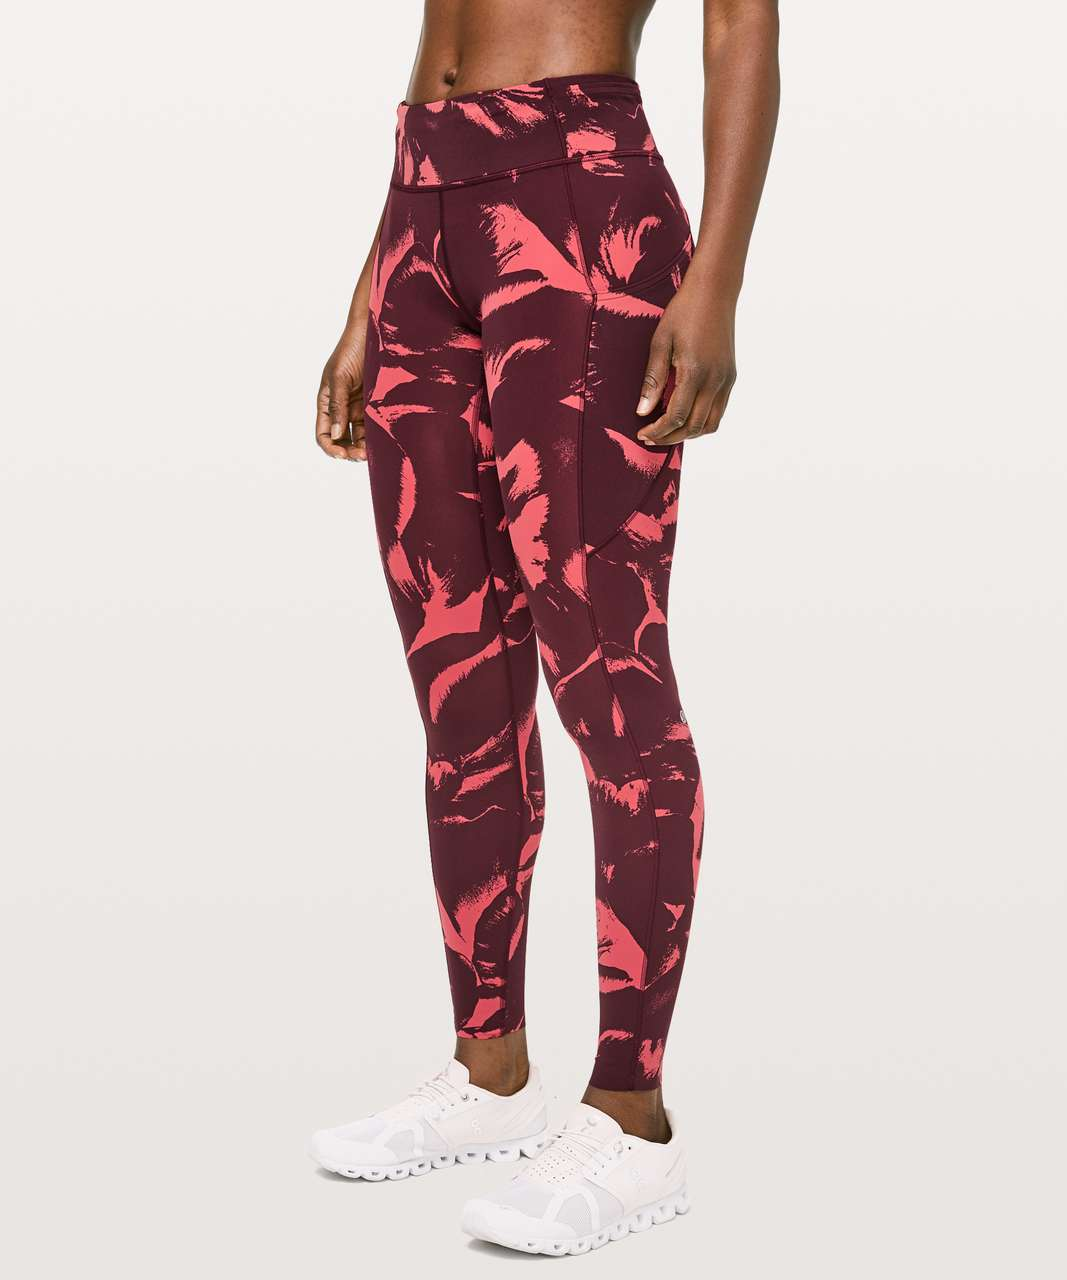 "Lululemon Fast & Free Full Length Tight *Mid-Rise Non-Reflective 28"" - Flower Pop Poppy Coral Deep Ruby"